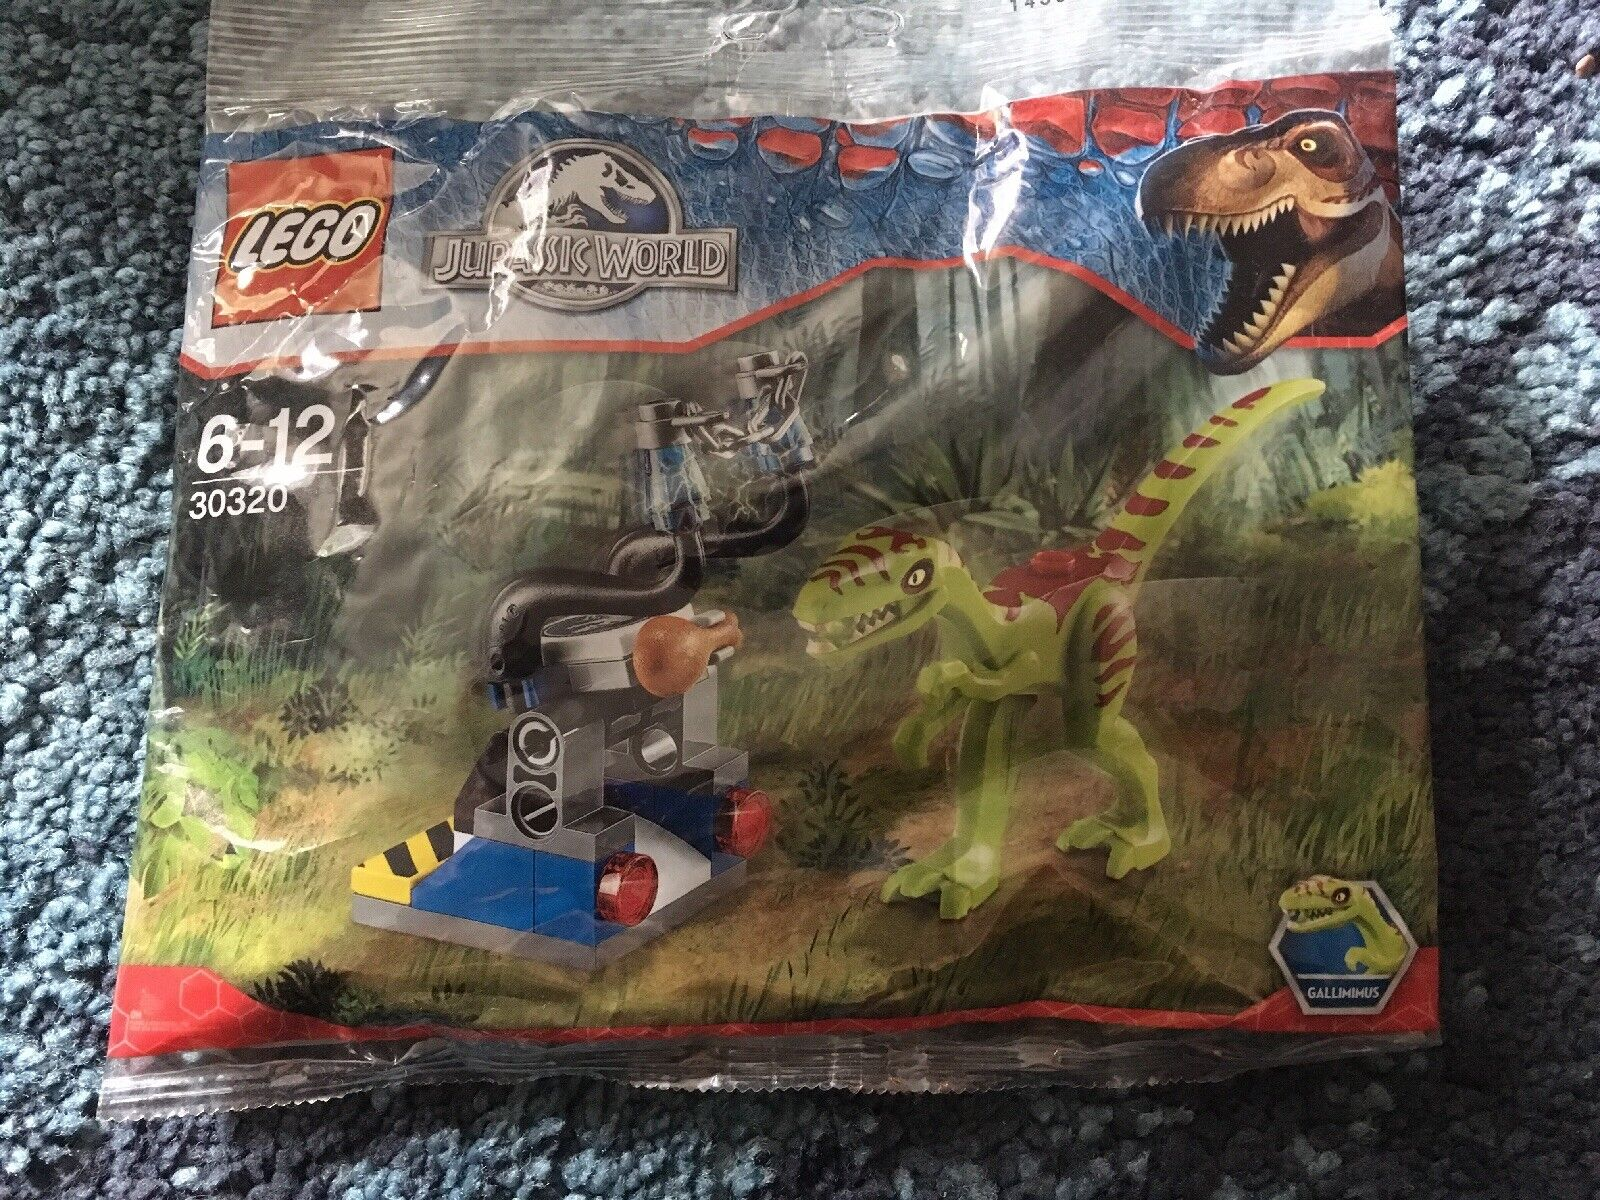 Brand new LEGO Jurassic World polybag 30320